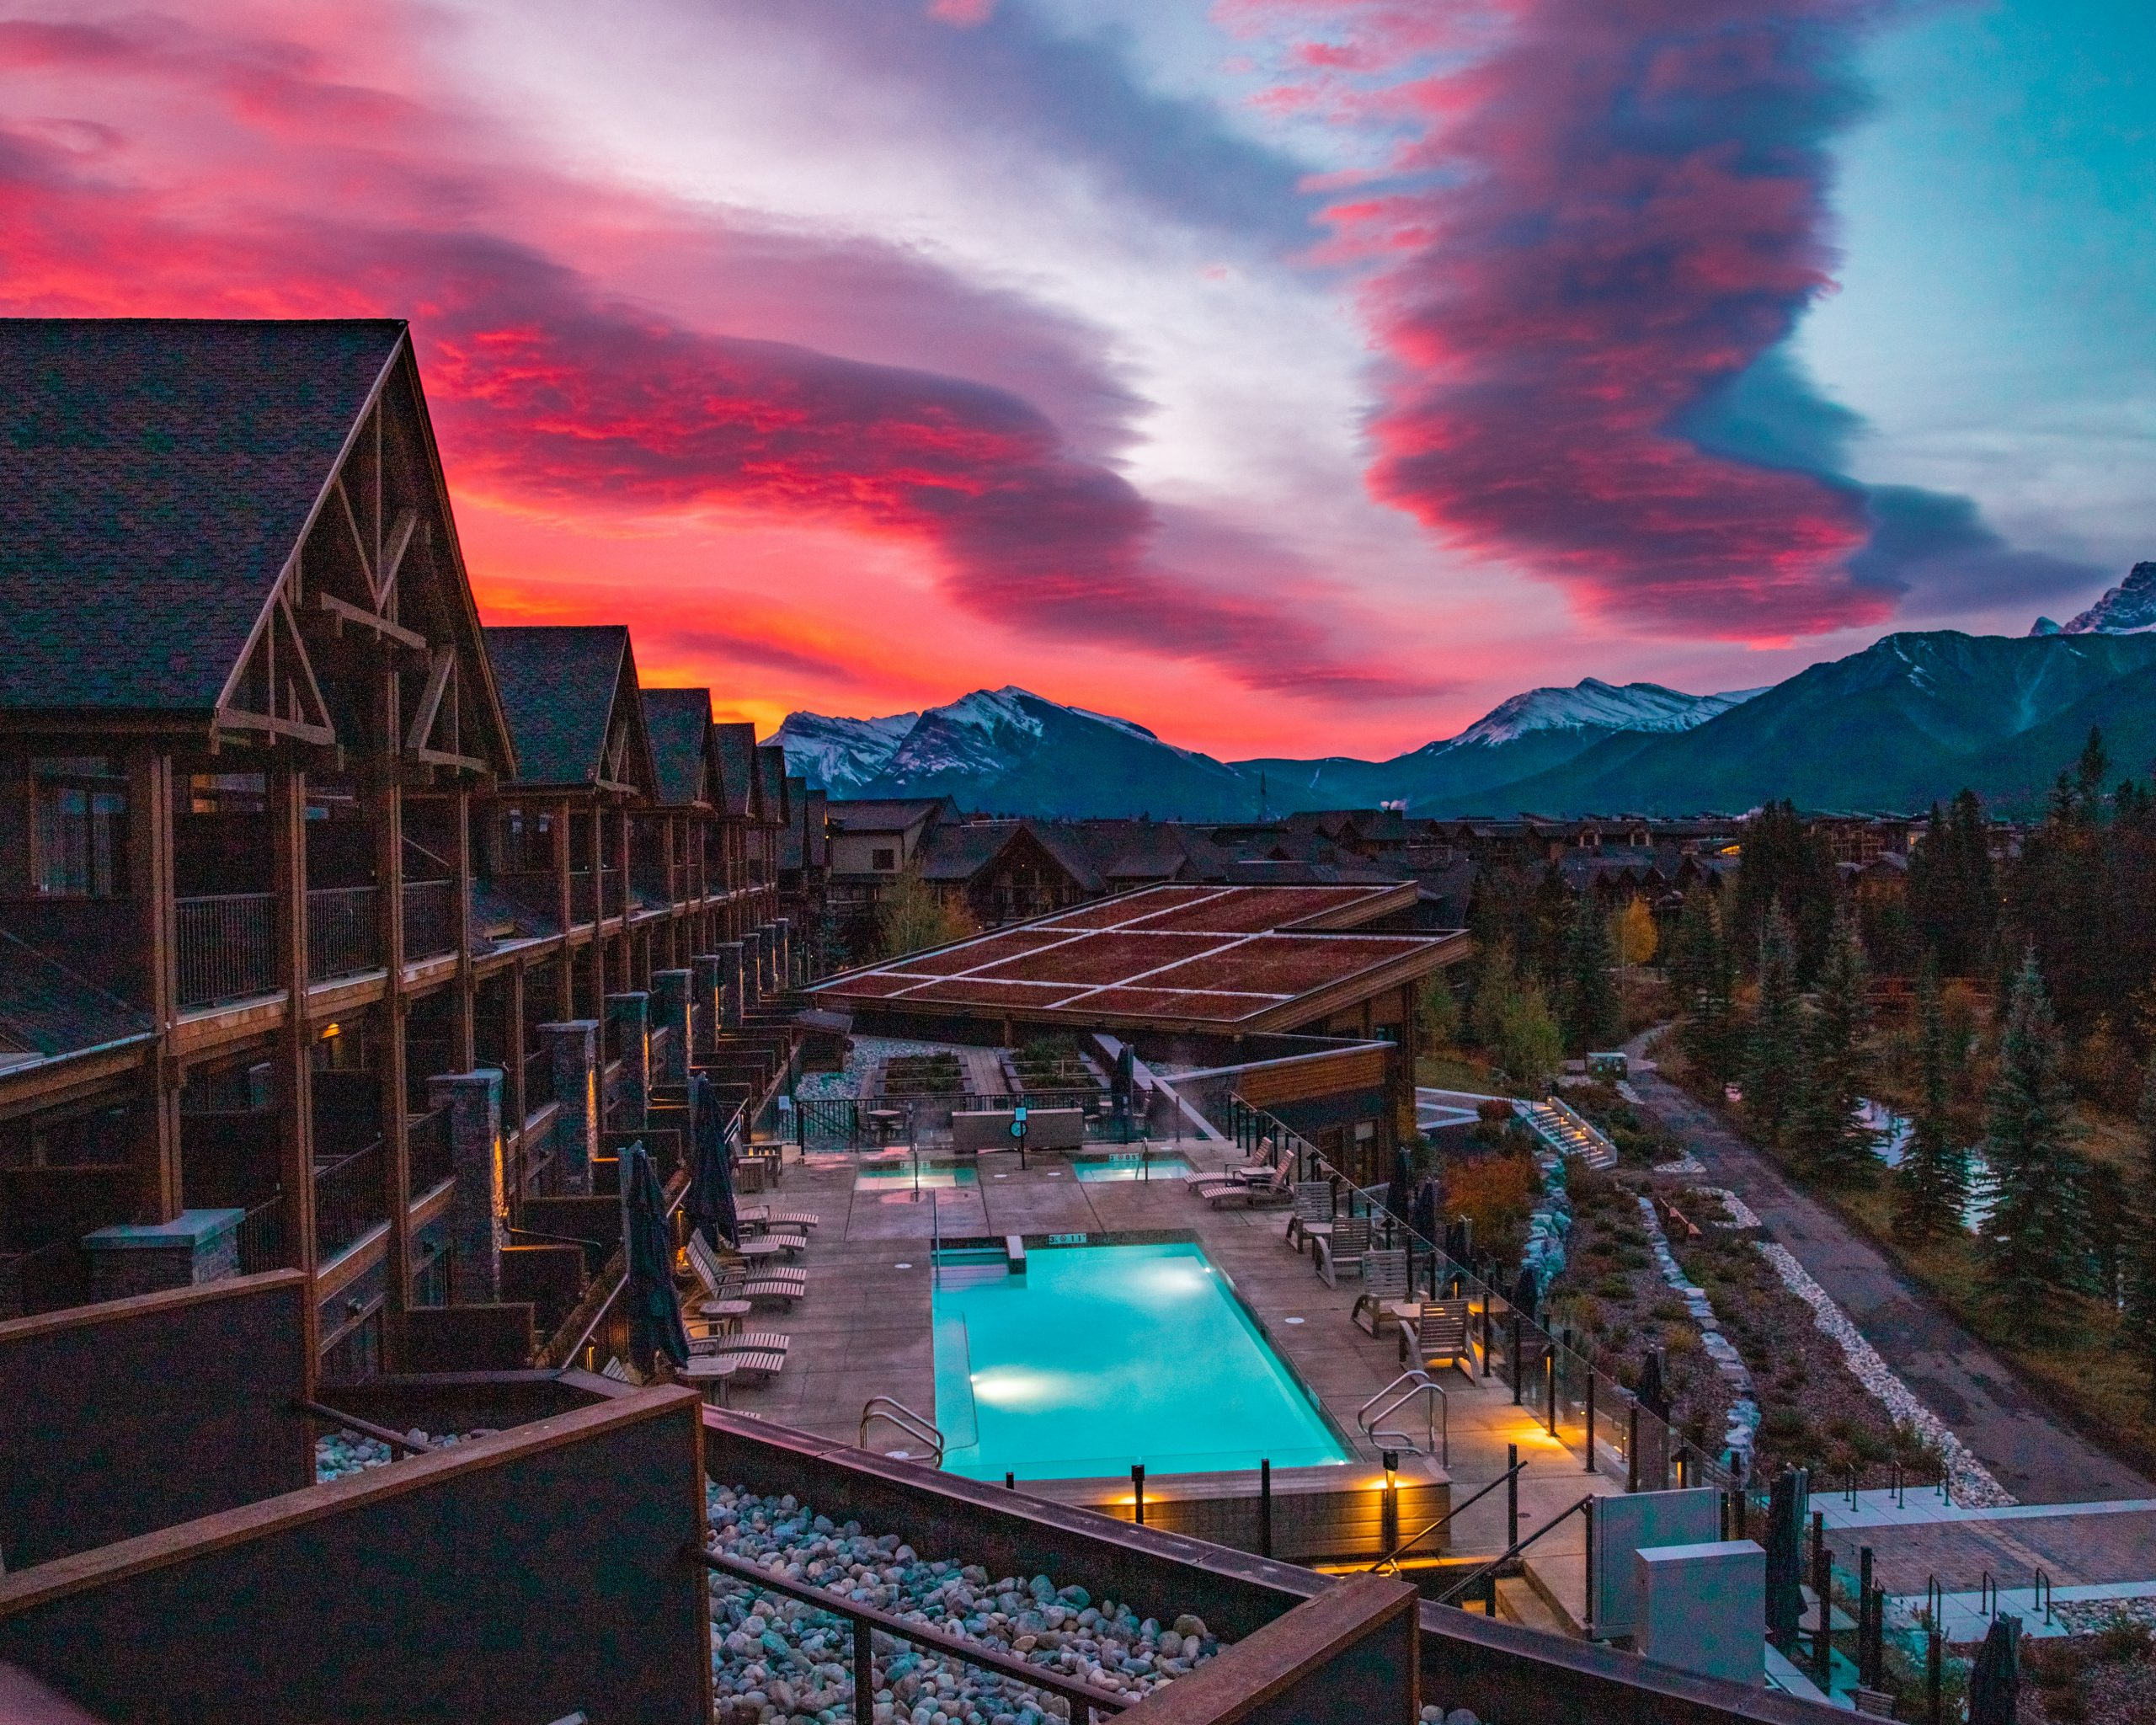 Vibrant Sunrise at Malcolm Hotel Canmore